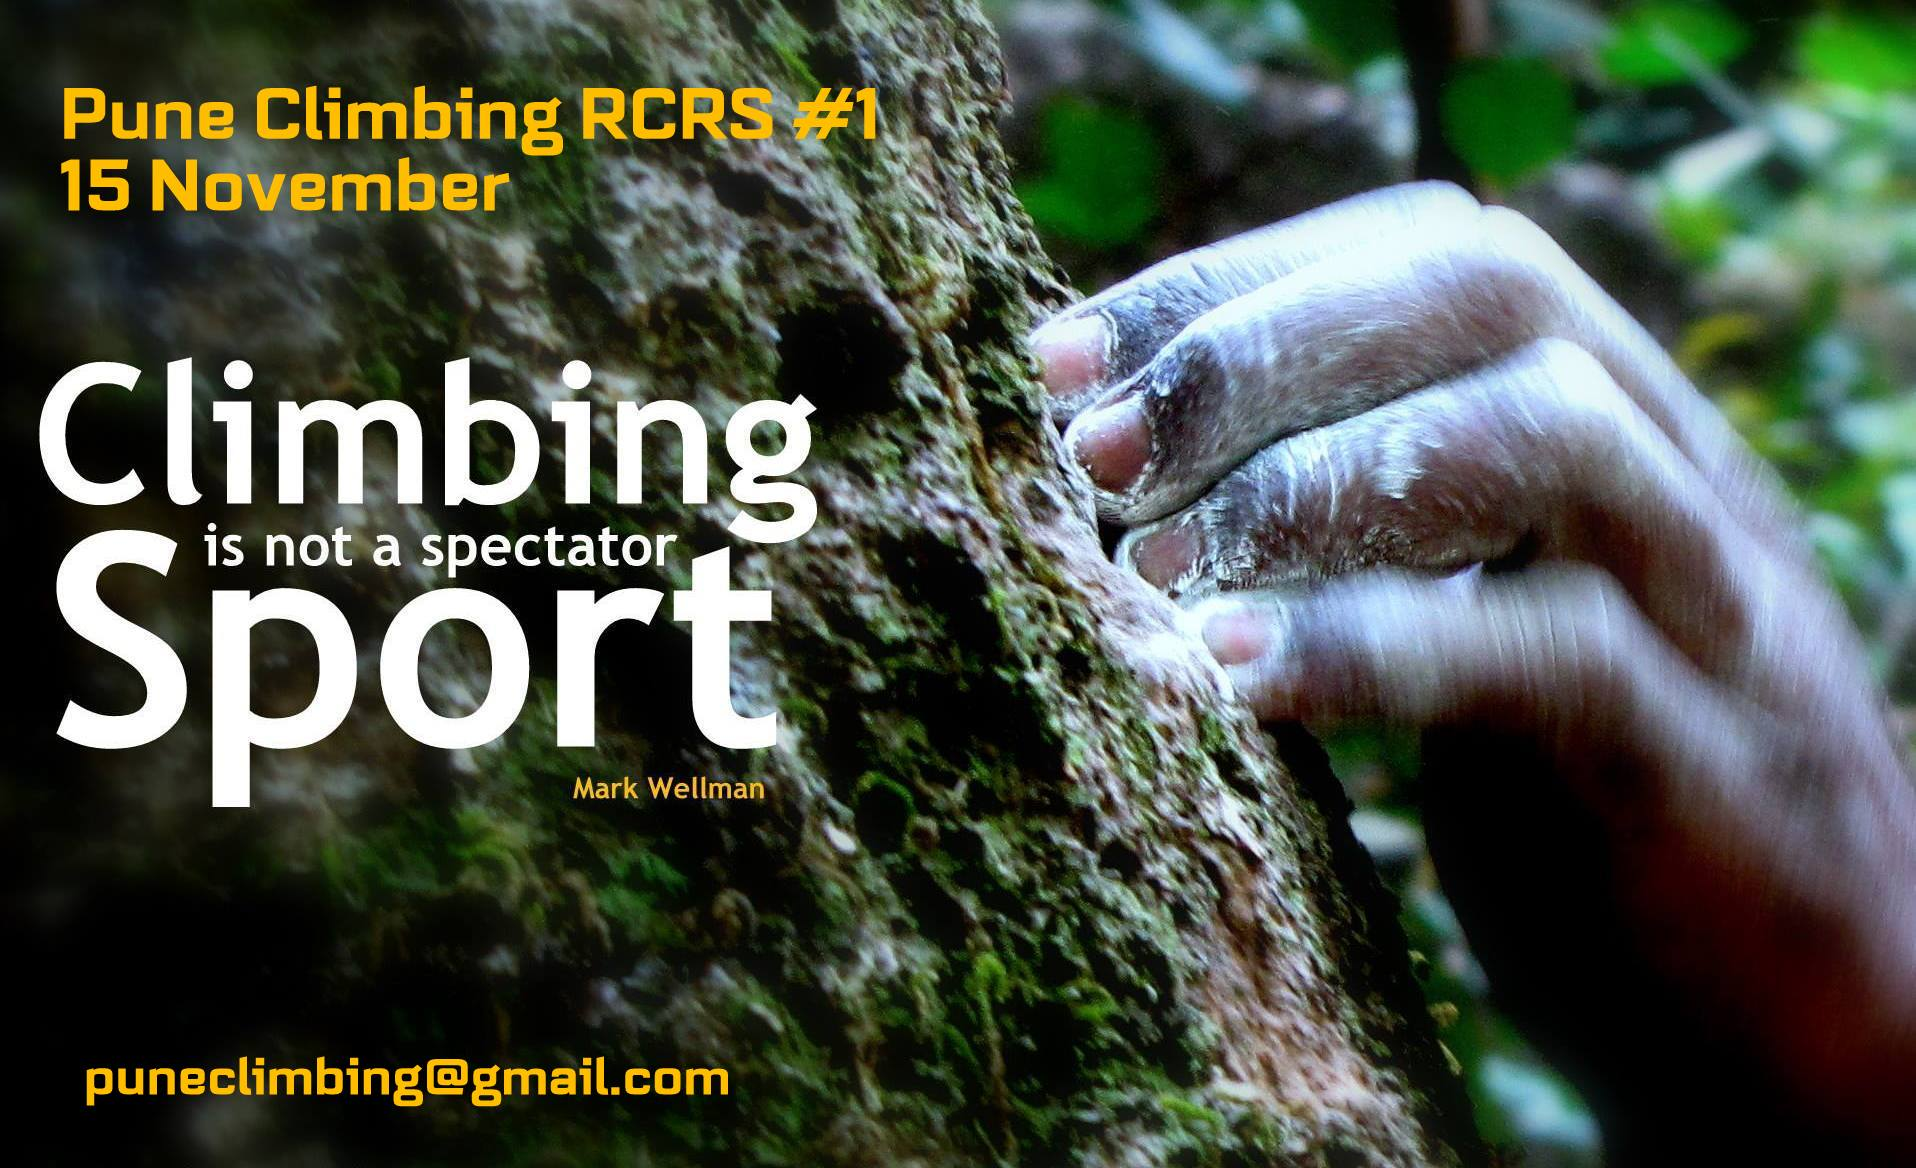 Book Online Tickets for Pune Climbing RCRS 1 - 15 November, Pune. Pune Climbing - Rock Climbing & Rappelling Session #1( RCRS = Rock Climbing & Rappelling Session )Date : 15 NovemberTime : 6.45AM to 10.30AMPlace : TaljaiAge Group - 8 years & AboveTime to Get closer to the ROCKS of Sahyadri\\\'s & Le